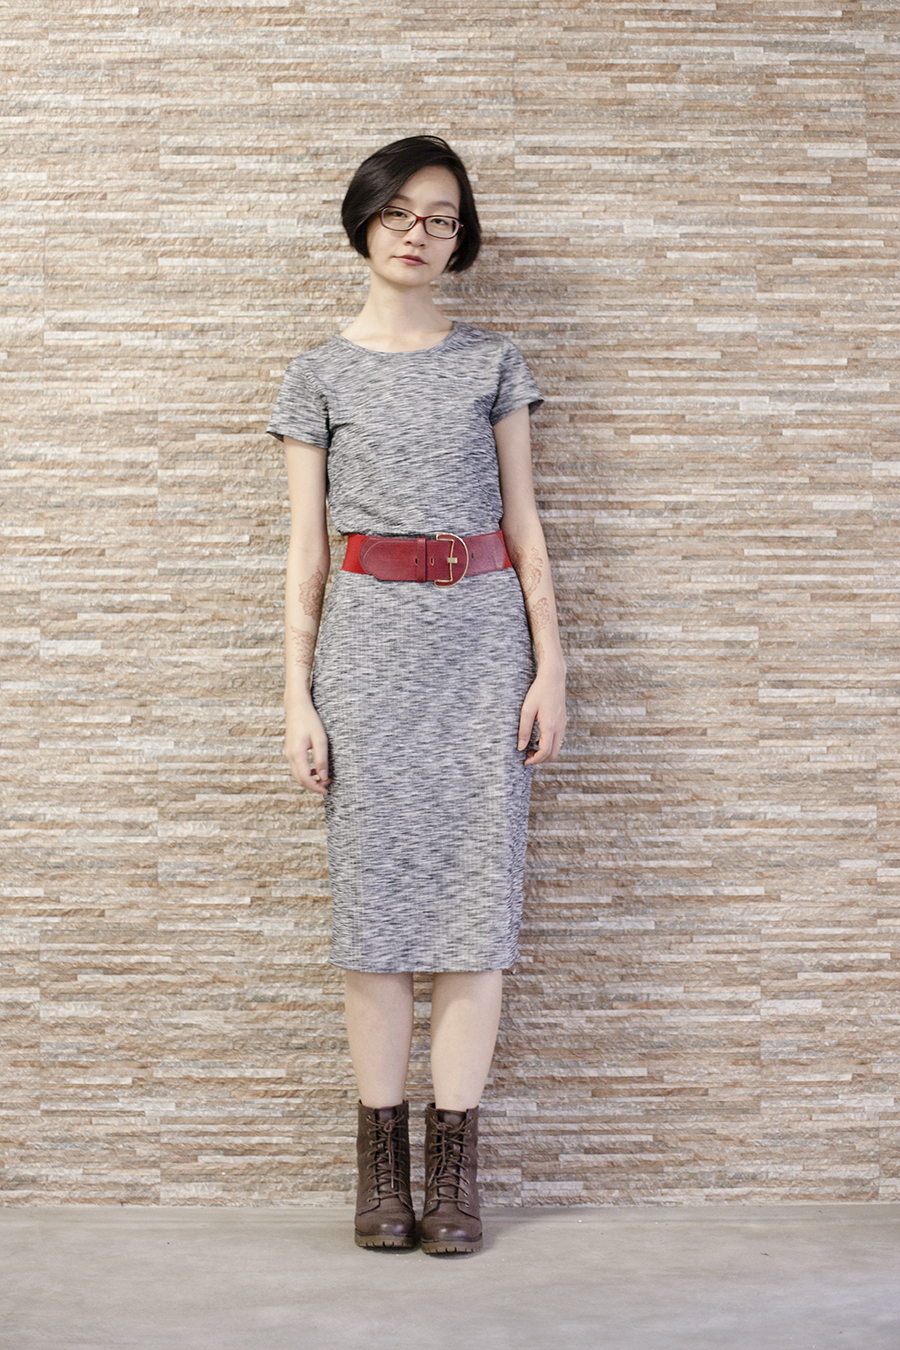 Cotton On heather grey bodycon midi dress, Steve Madden boots, Accessorize red belt, Firmoo glasses.